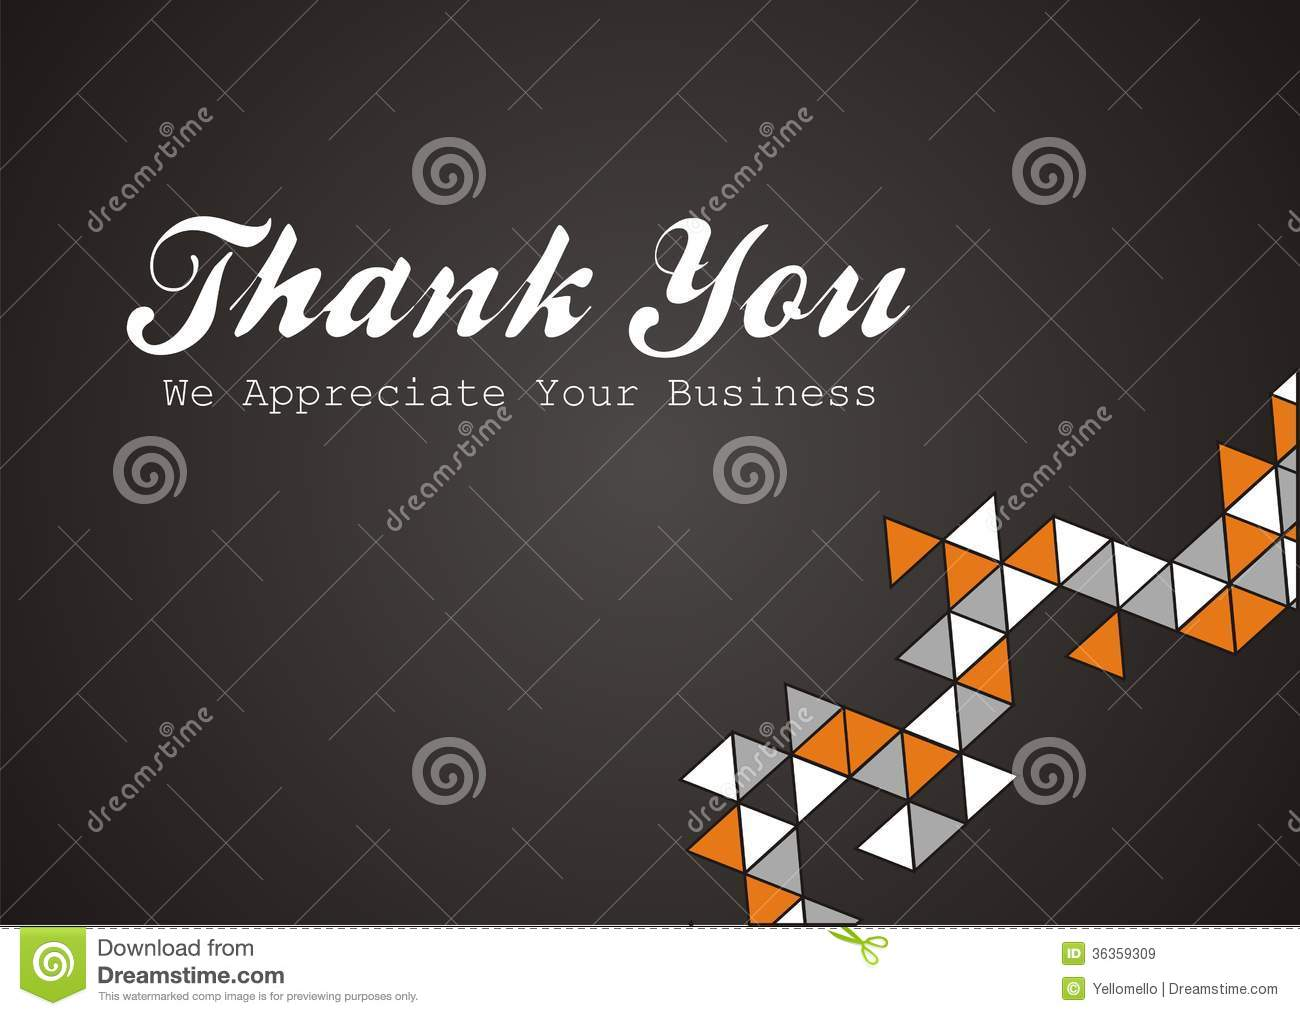 We Appreciate Your Business Thank you - we appreciate your